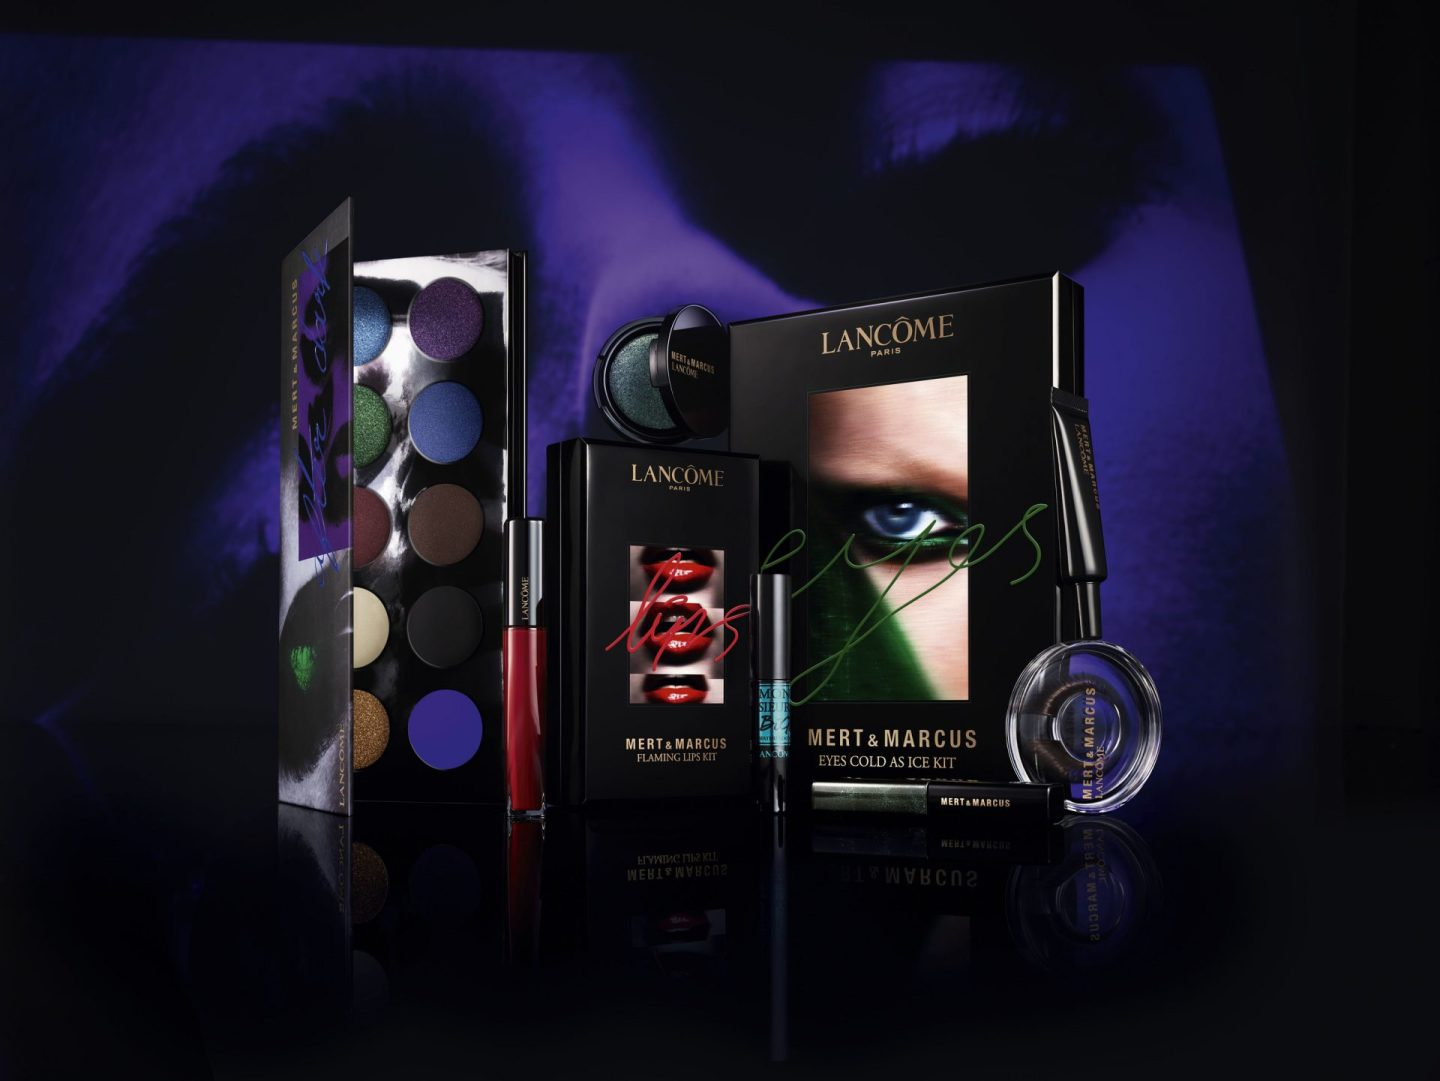 Lancôme Collabs with Mert & Marcus for New Makeup Collection